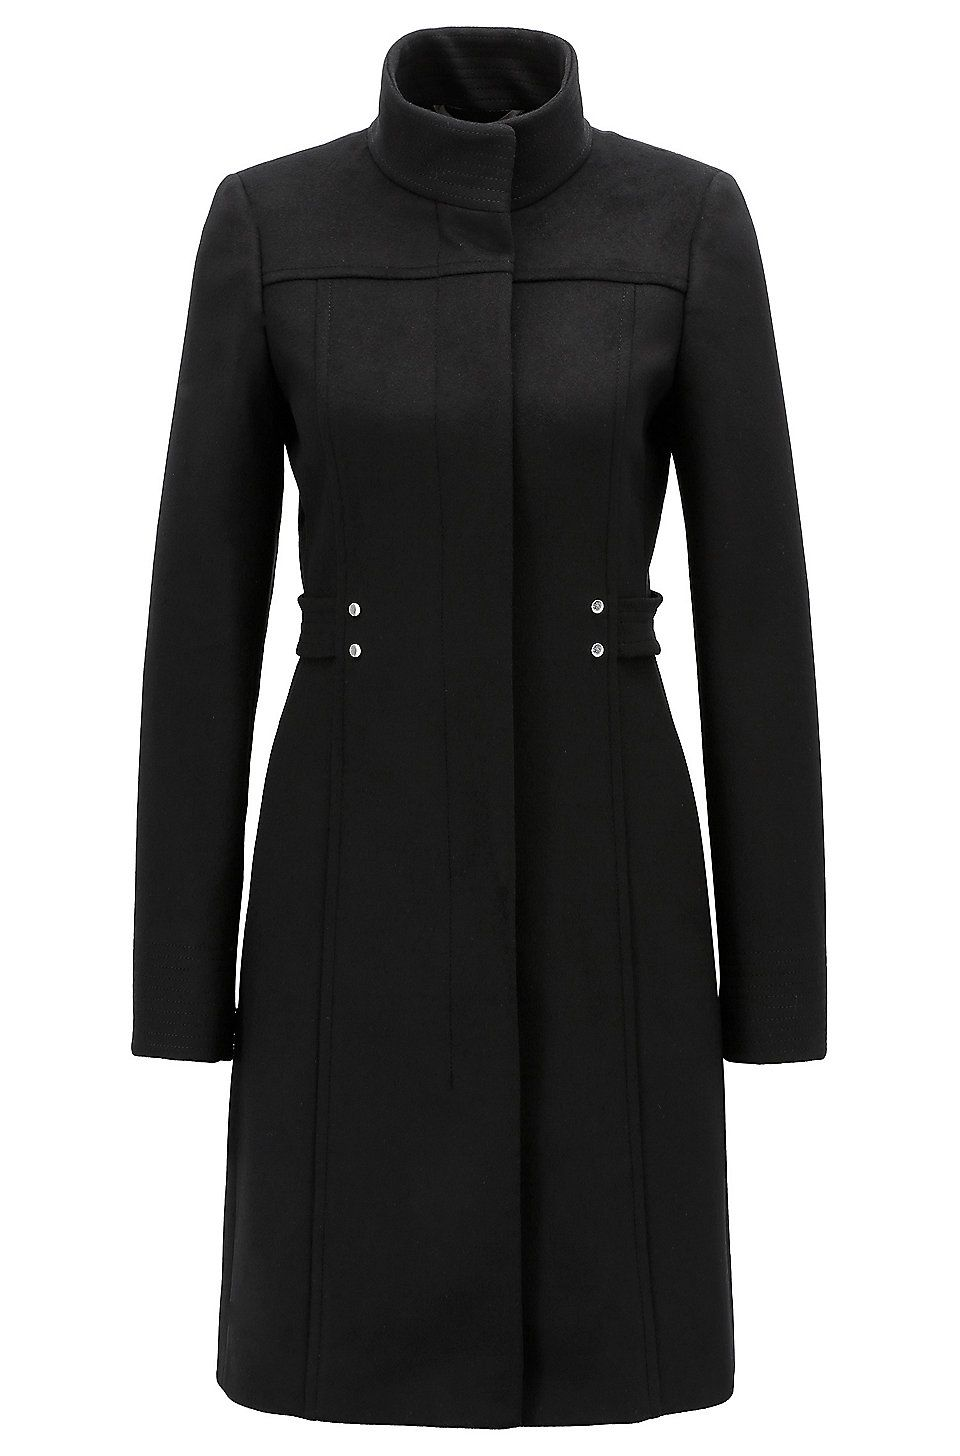 Virgin Wool Blend Coat With Hardware Trimmed Belt Detail Black Jackets And Coats From Boss For Women For 399 00 In The Official Hugo Moda Sukienki Plaszcze